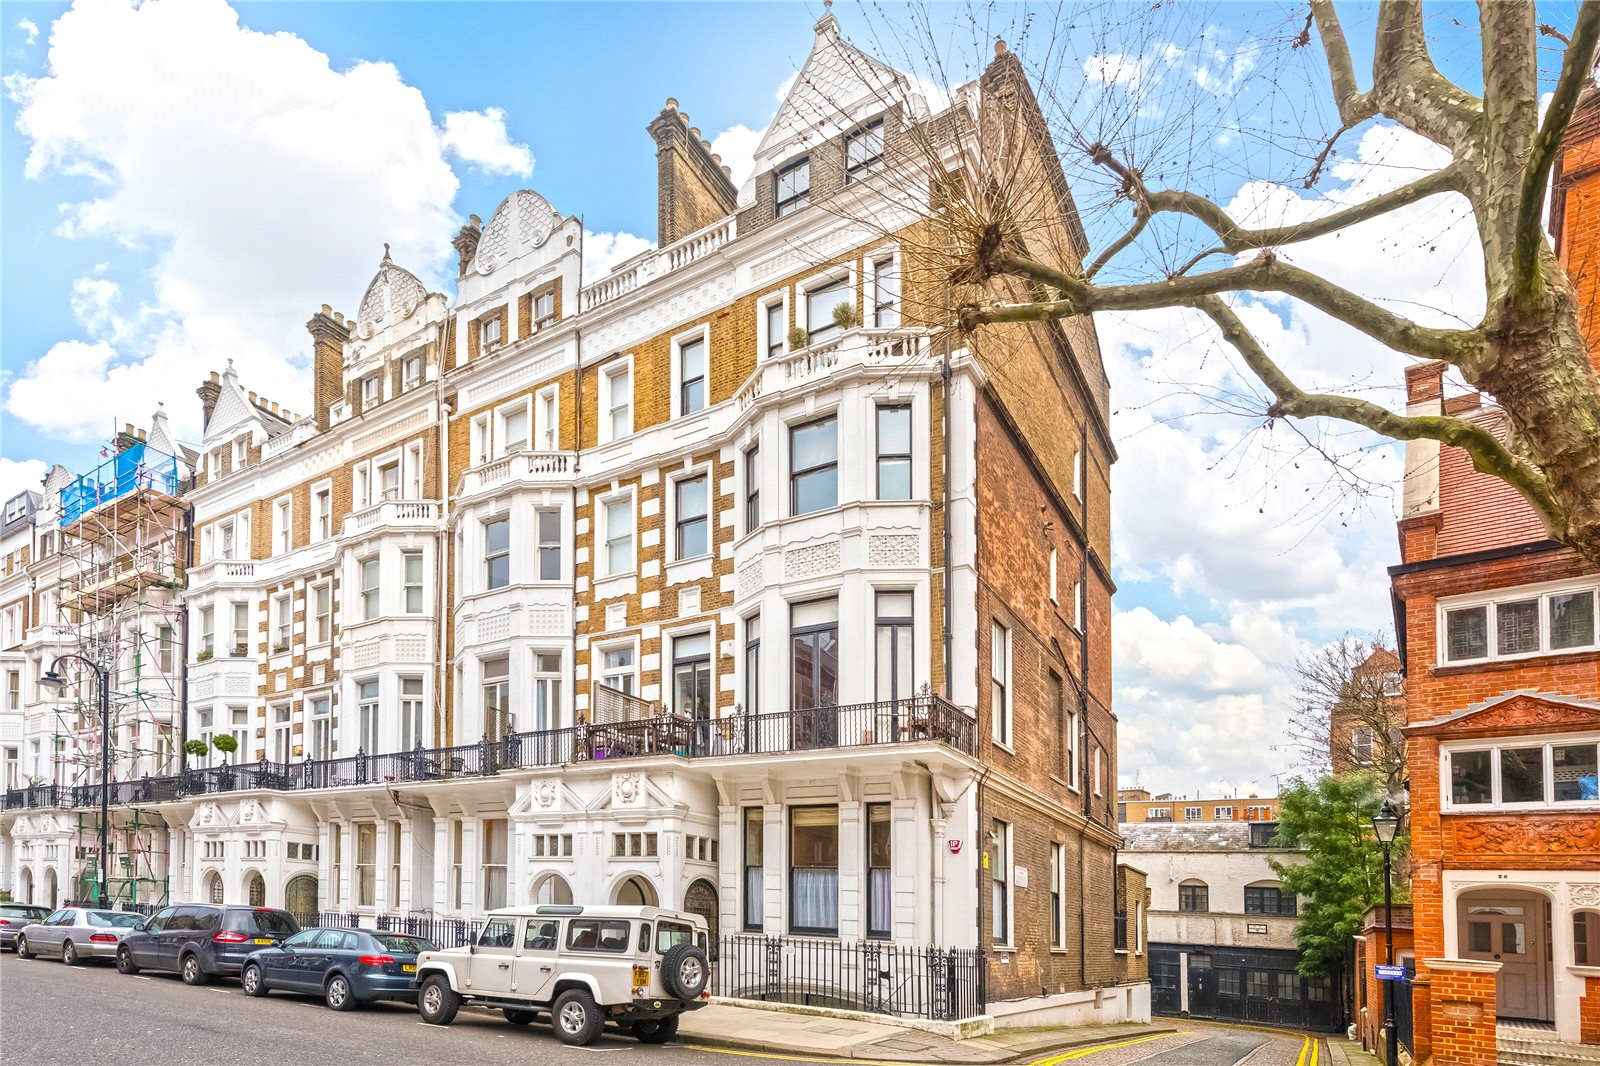 Additional photo for property listing at Harrington Gardens, South Kensington, London, SW7 South Kensington, London, Inghilterra